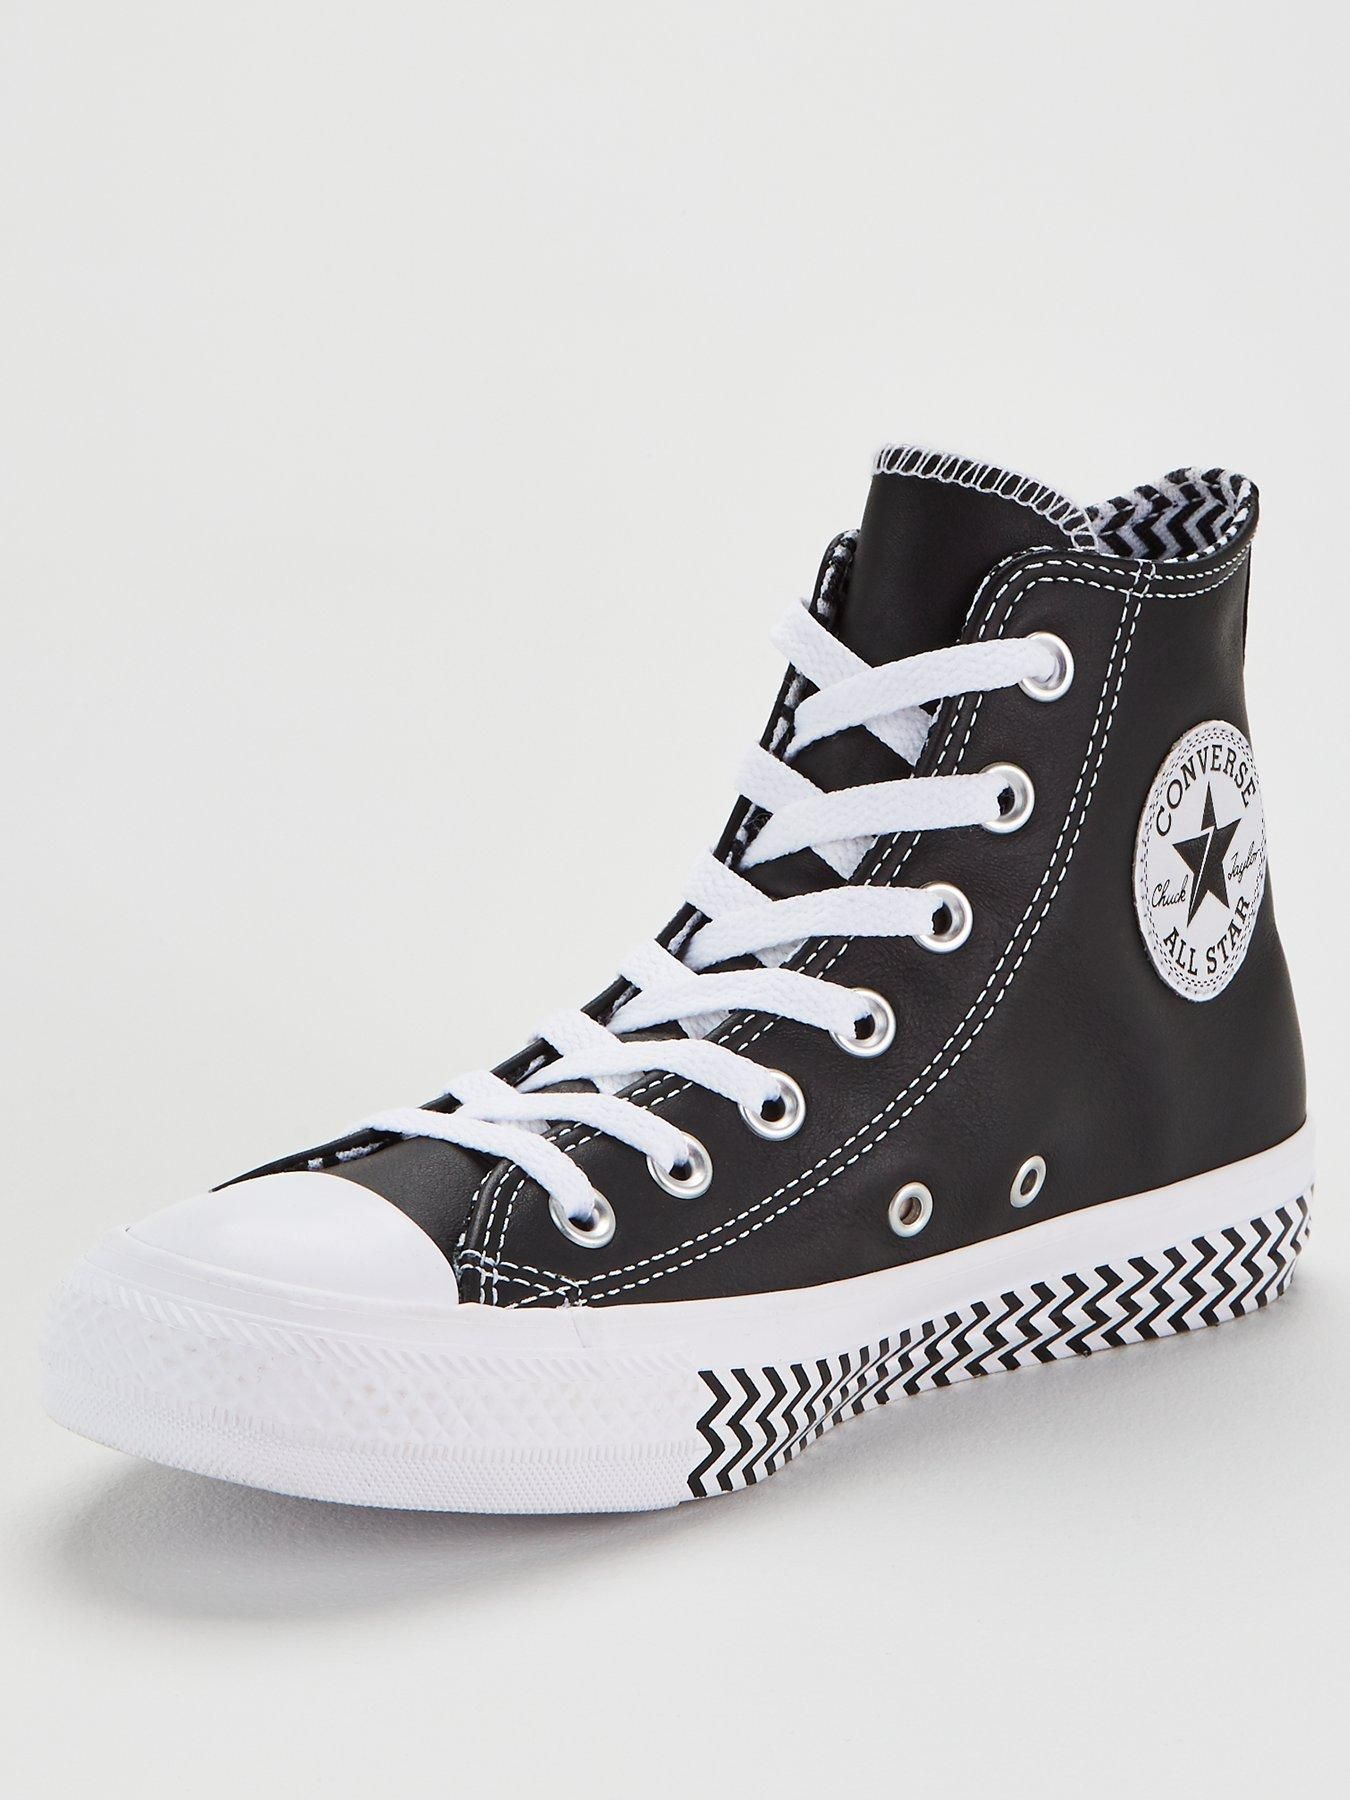 Converse Chuck Taylor All Star Vltg Leather High Top Black